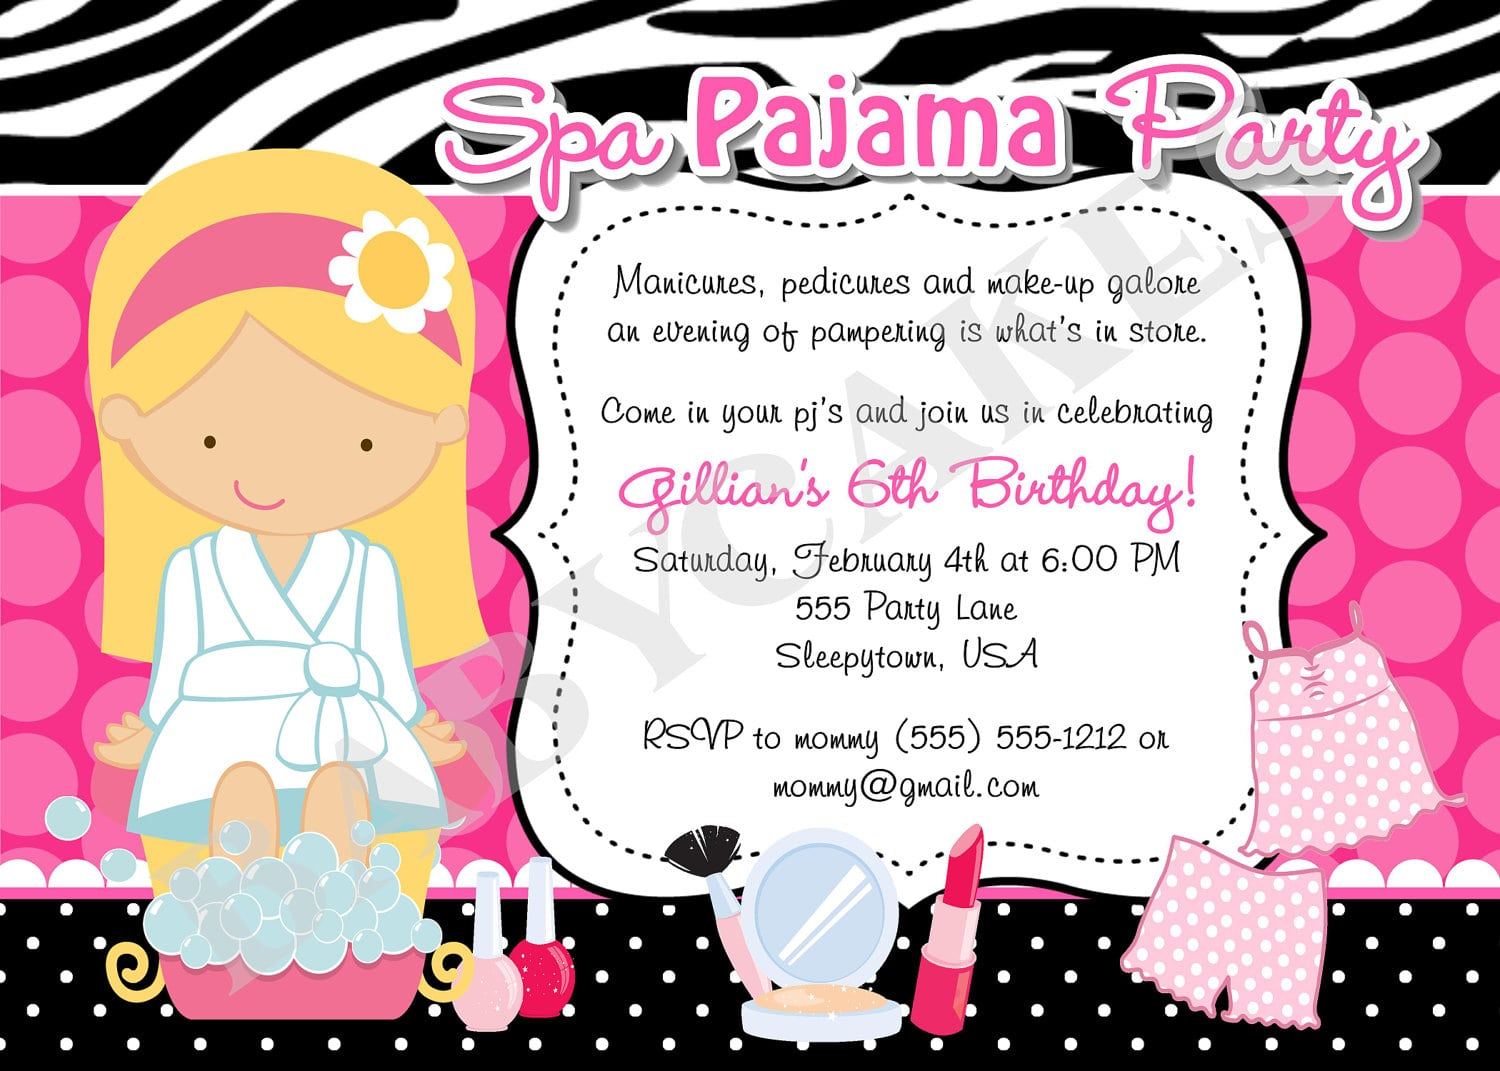 Pajama Party Invitation Pajama Party Invitation With Some